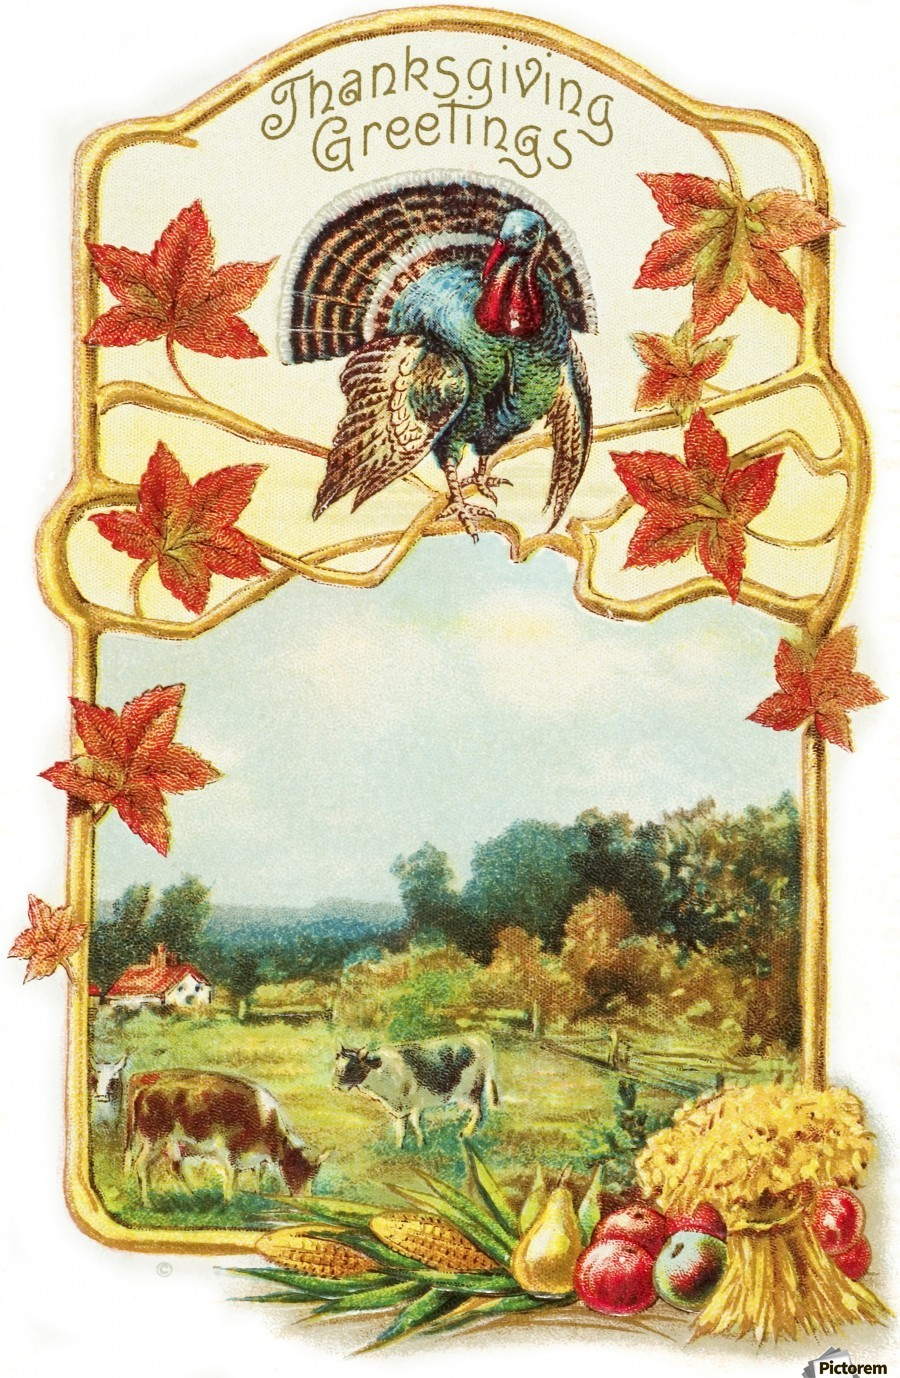 Vintage Thanksgiving Greeting Card With Illustration Of Turkey And